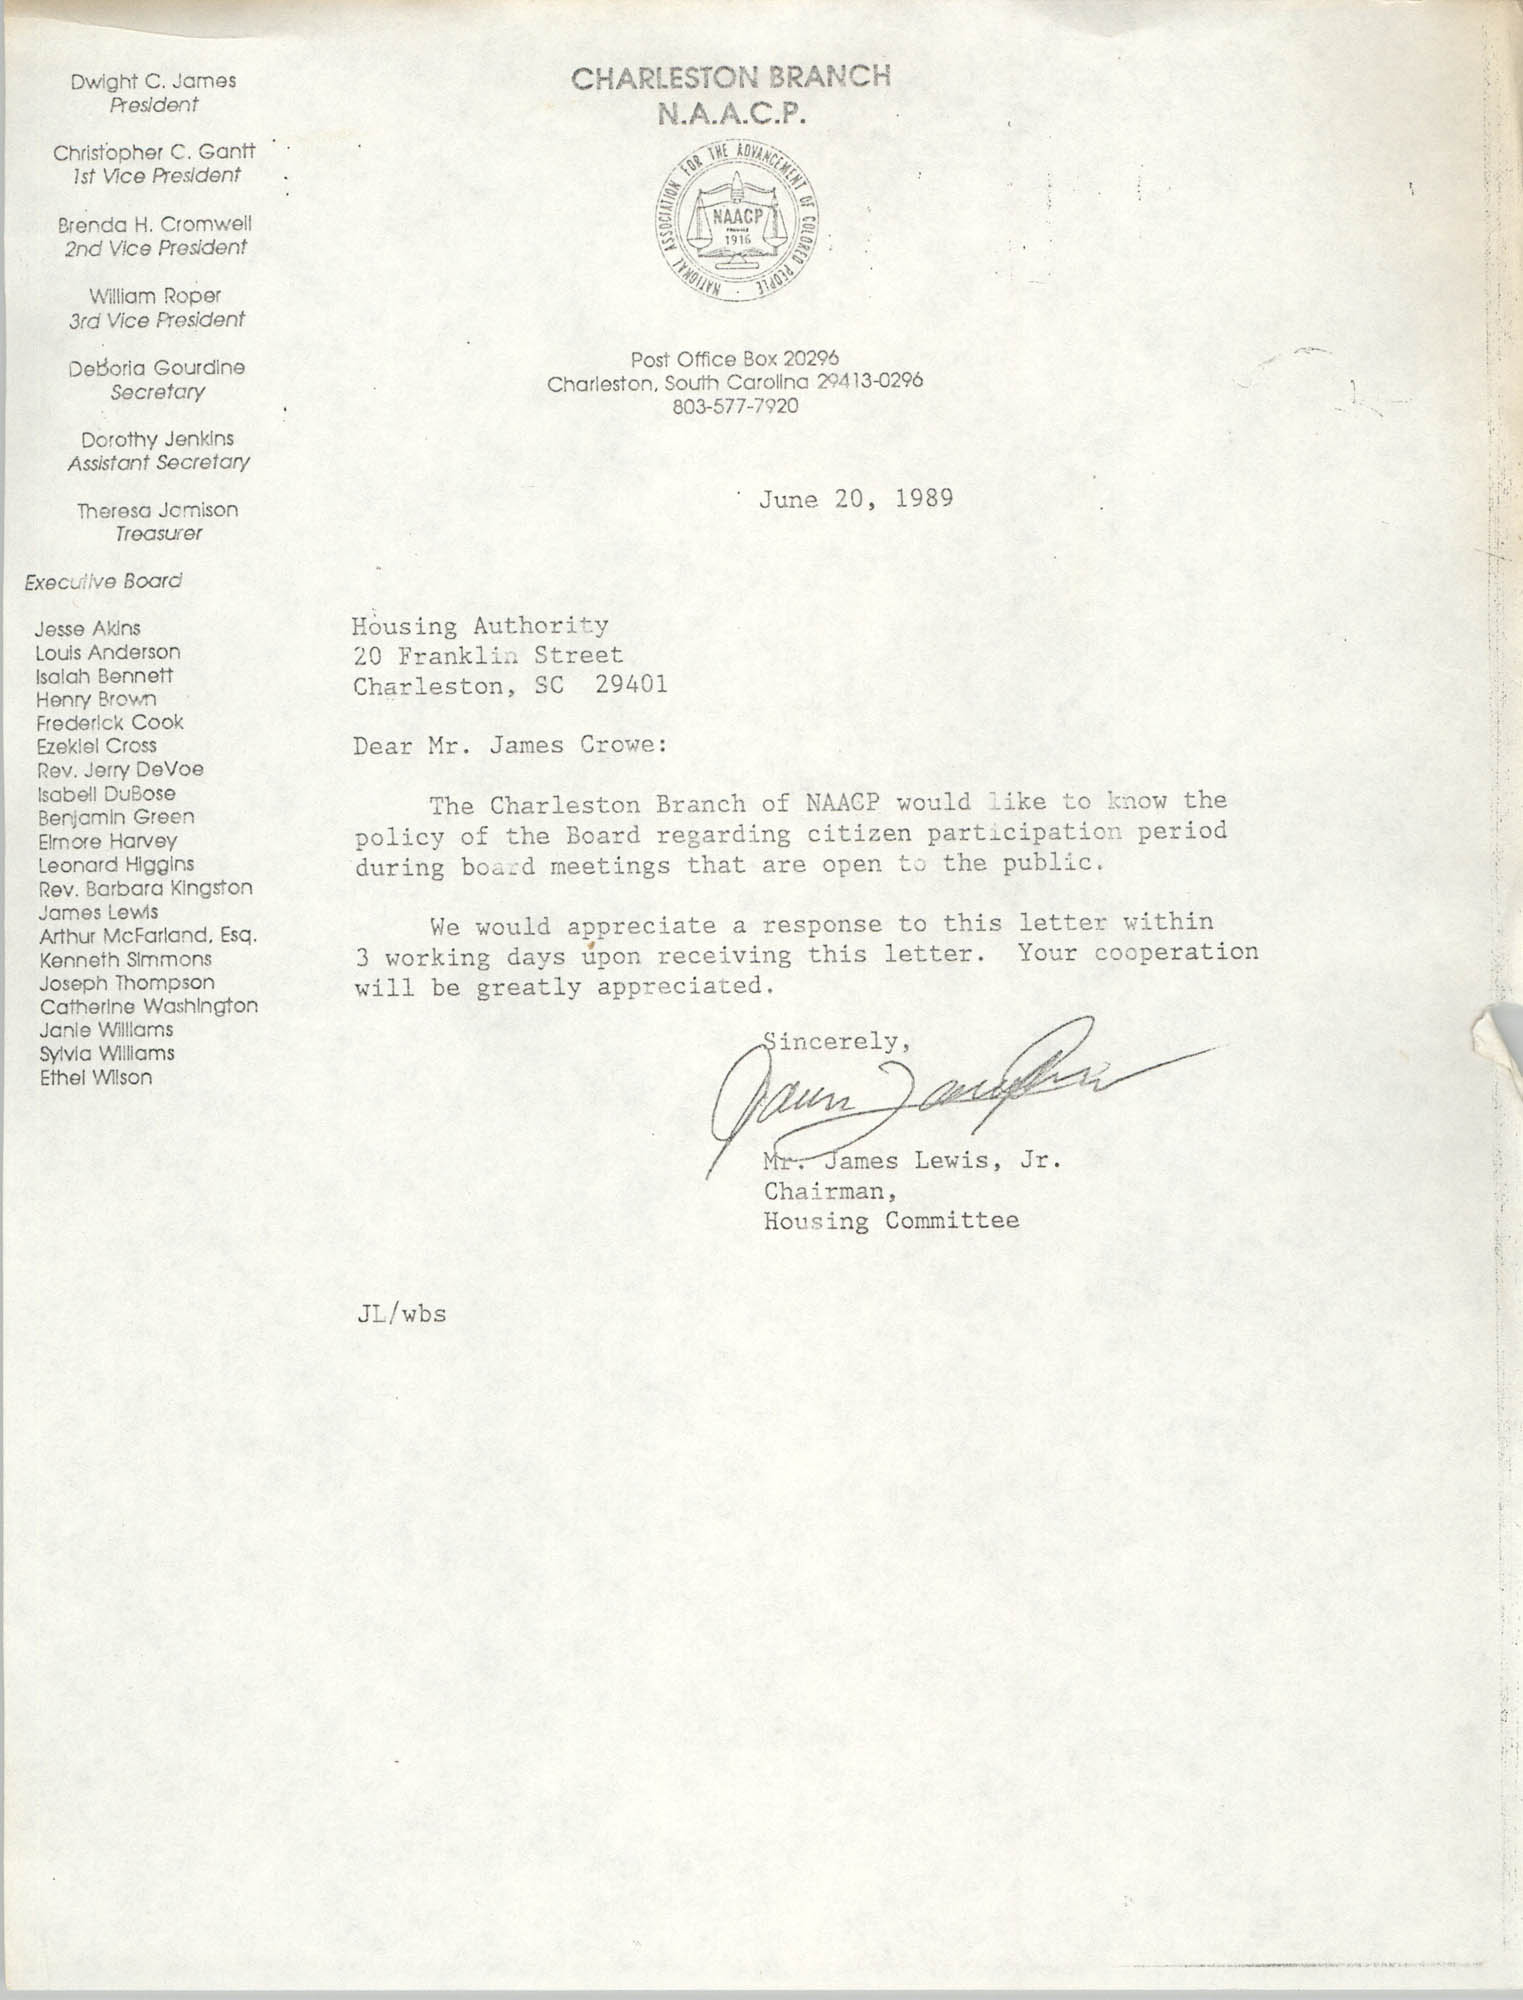 Letter from James Lewis, Jr. to James Crowe, June 20, 1989